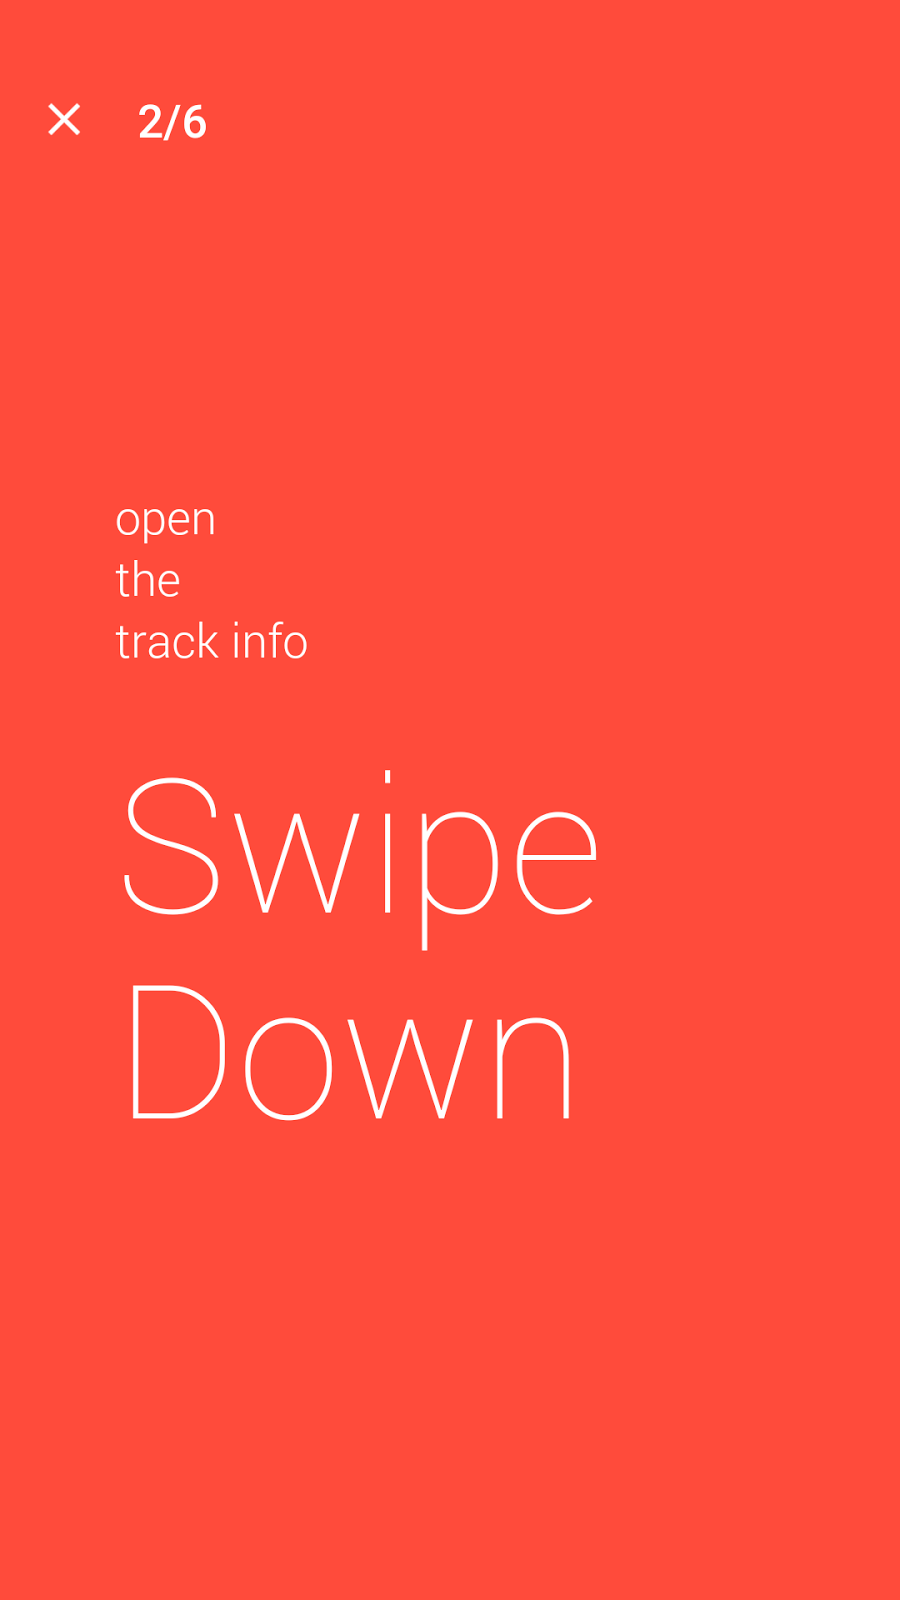 Swipe Down to see music track info